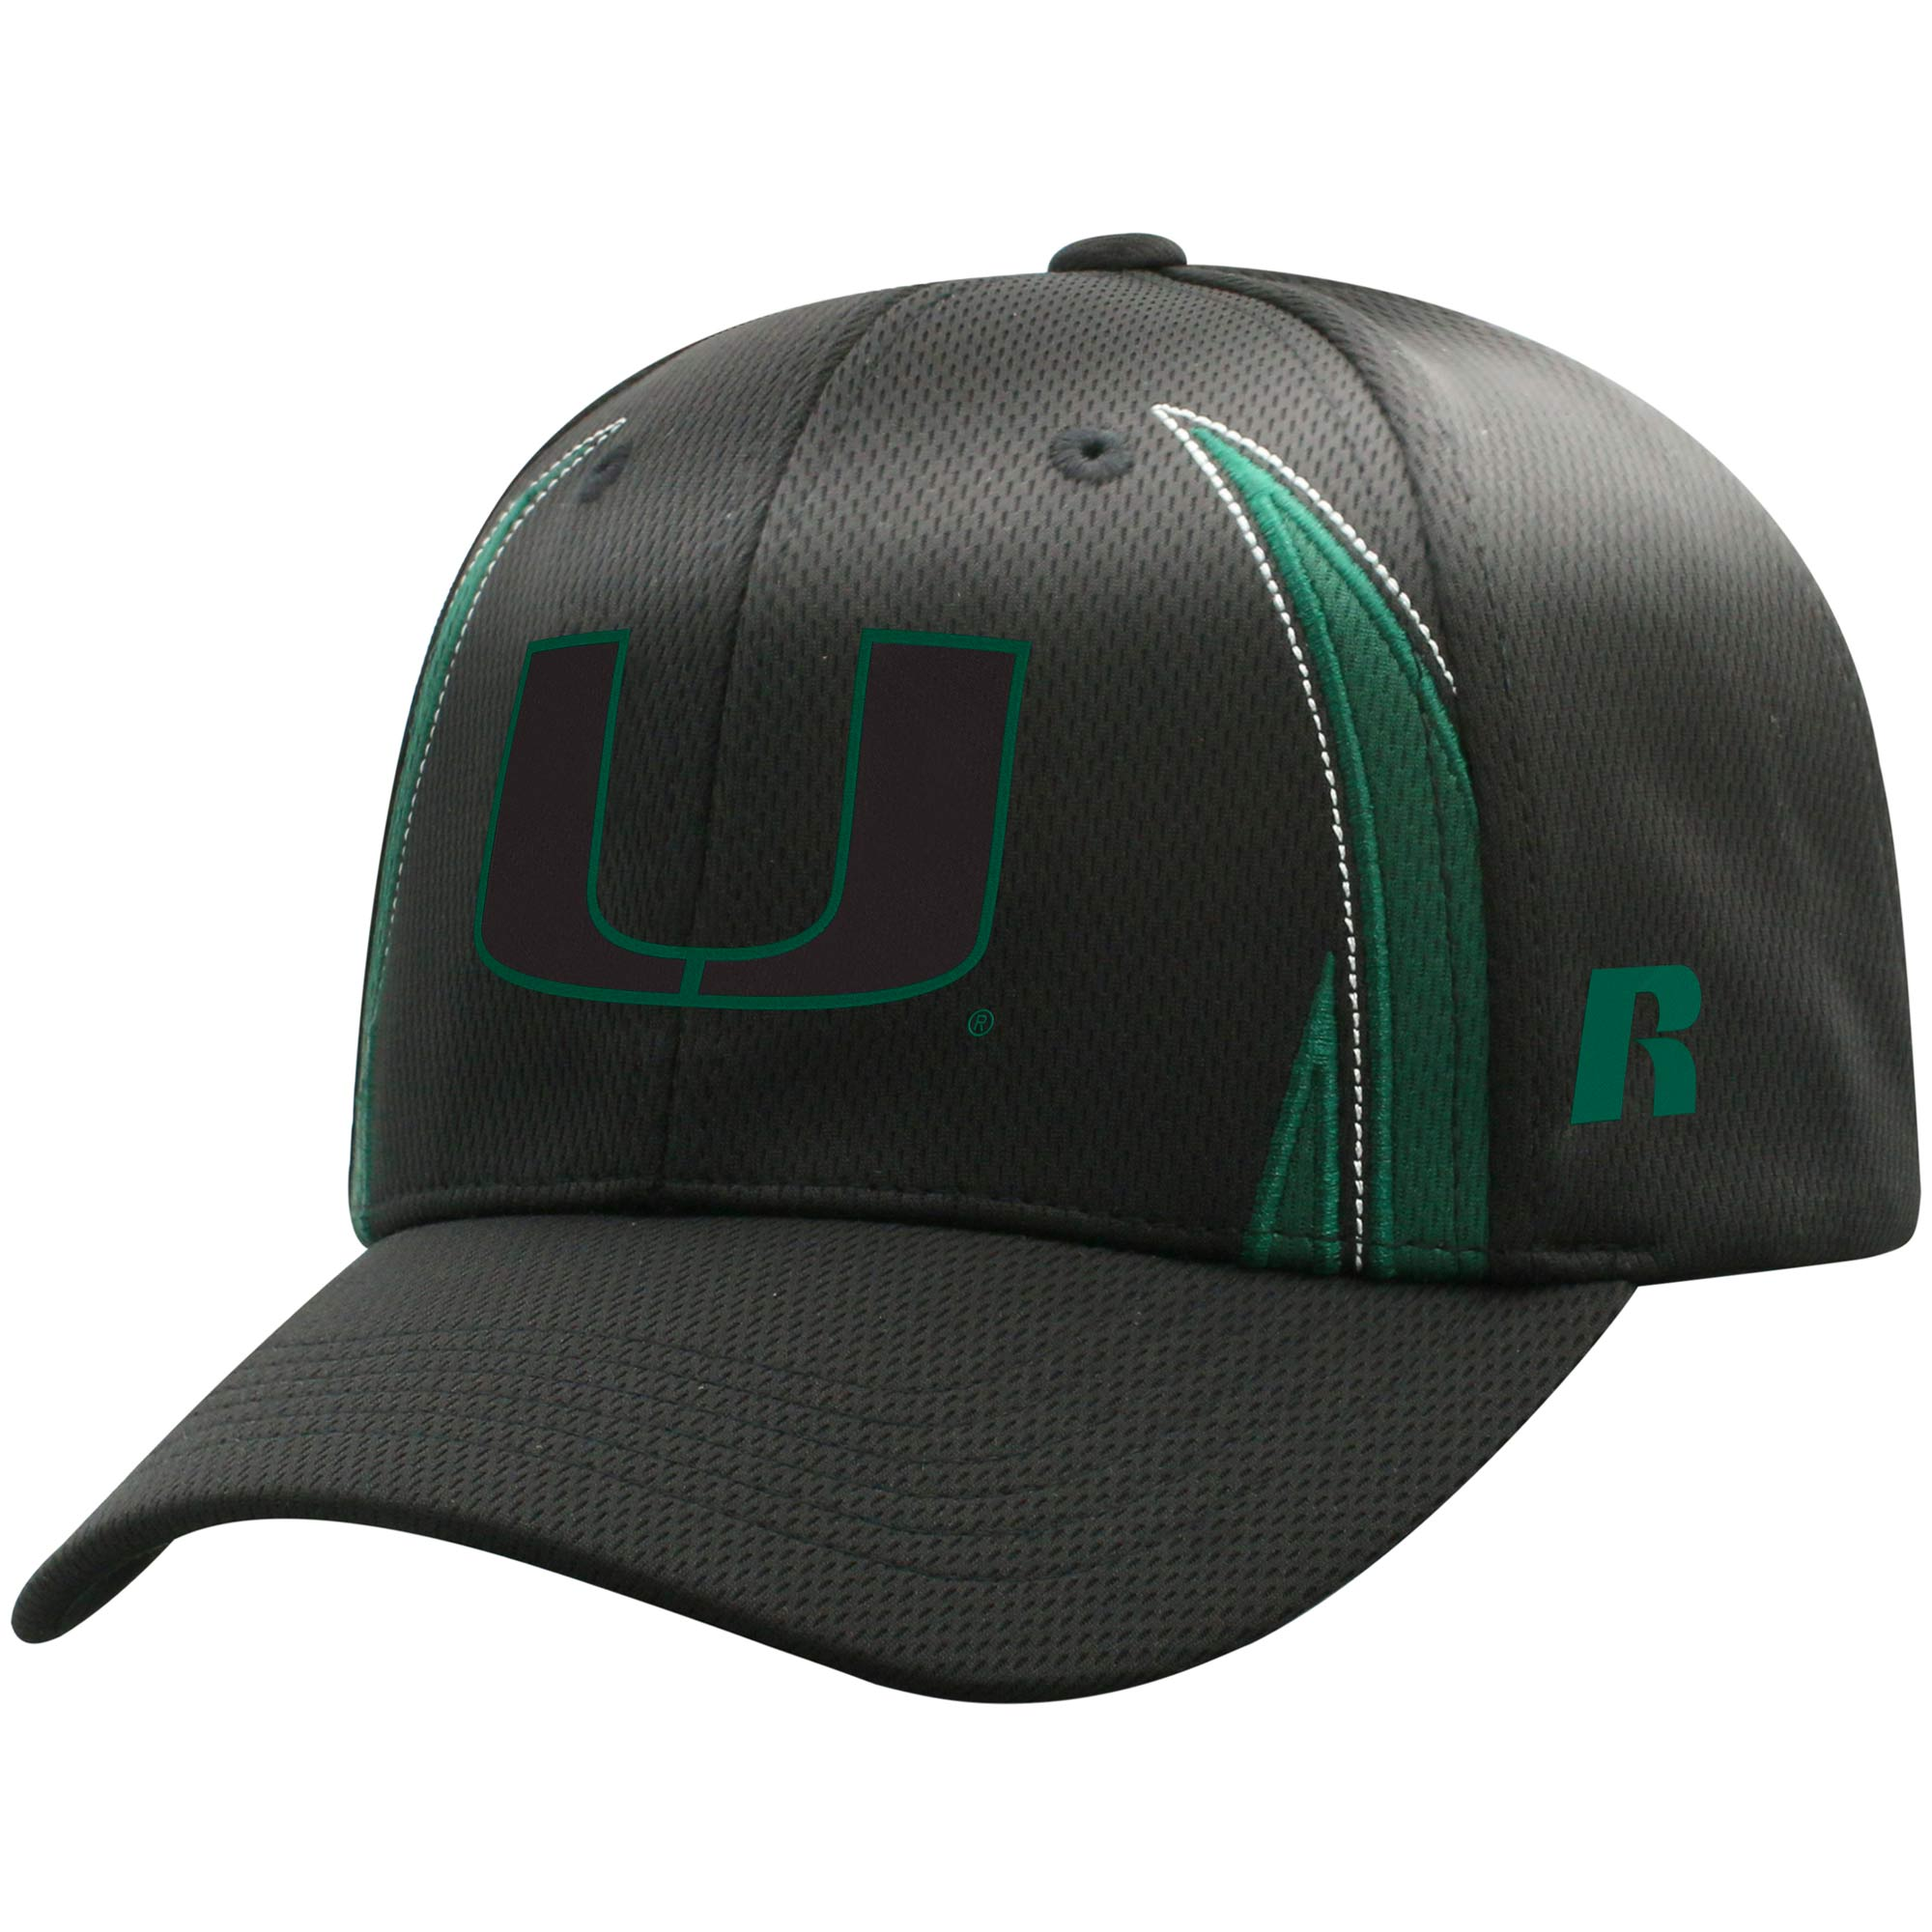 Men's Russell Black Miami Hurricanes React Adjustable Hat - OSFA